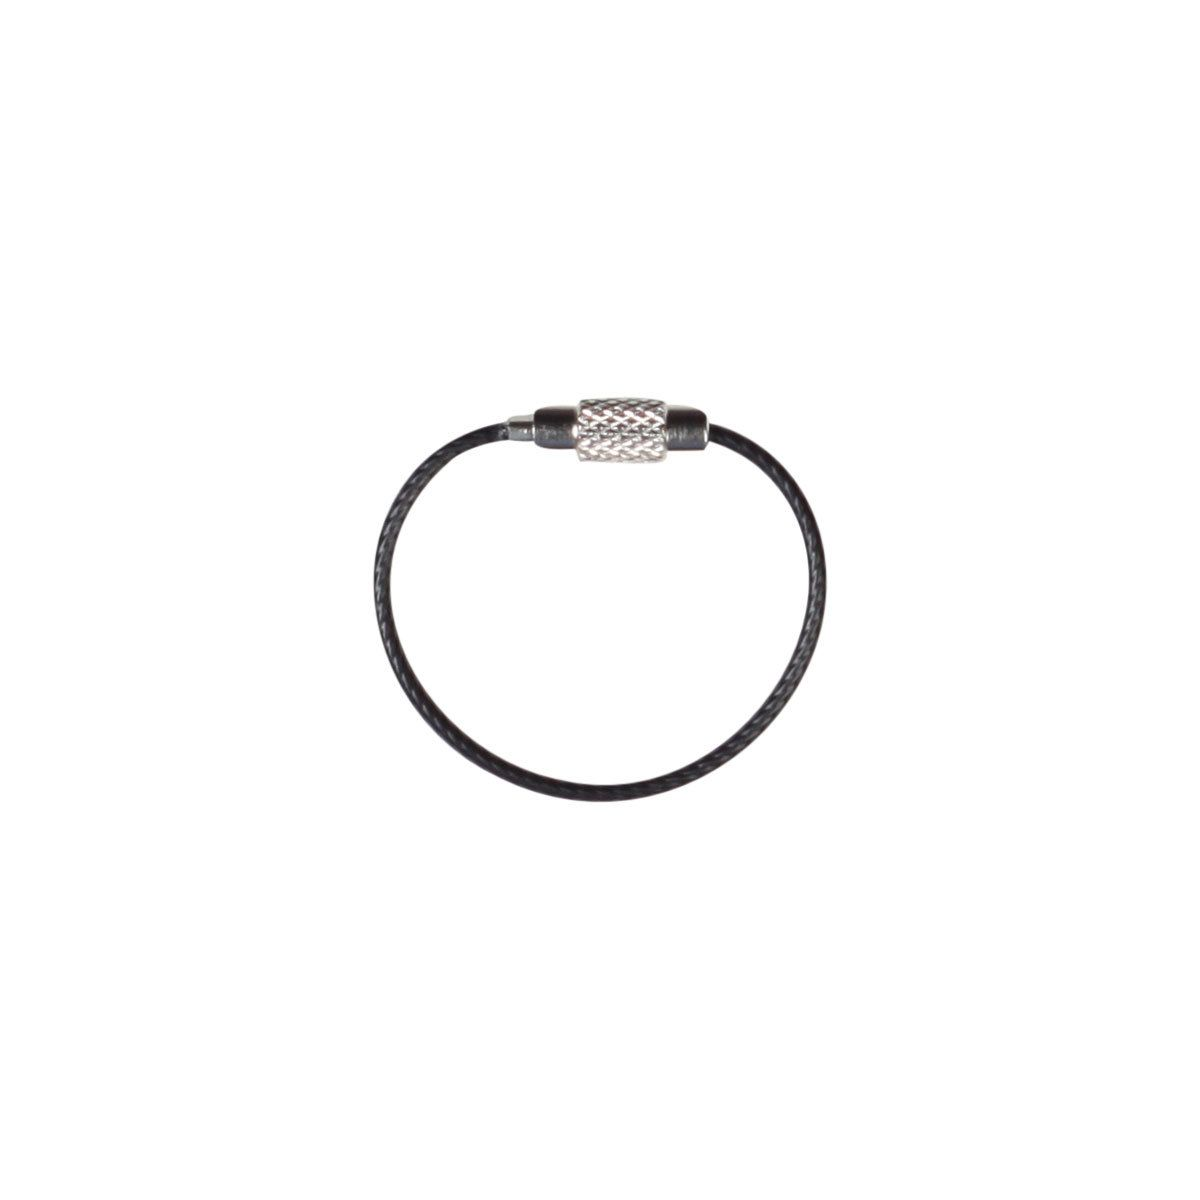 Micro cable key ring 5pack key rings cable micro